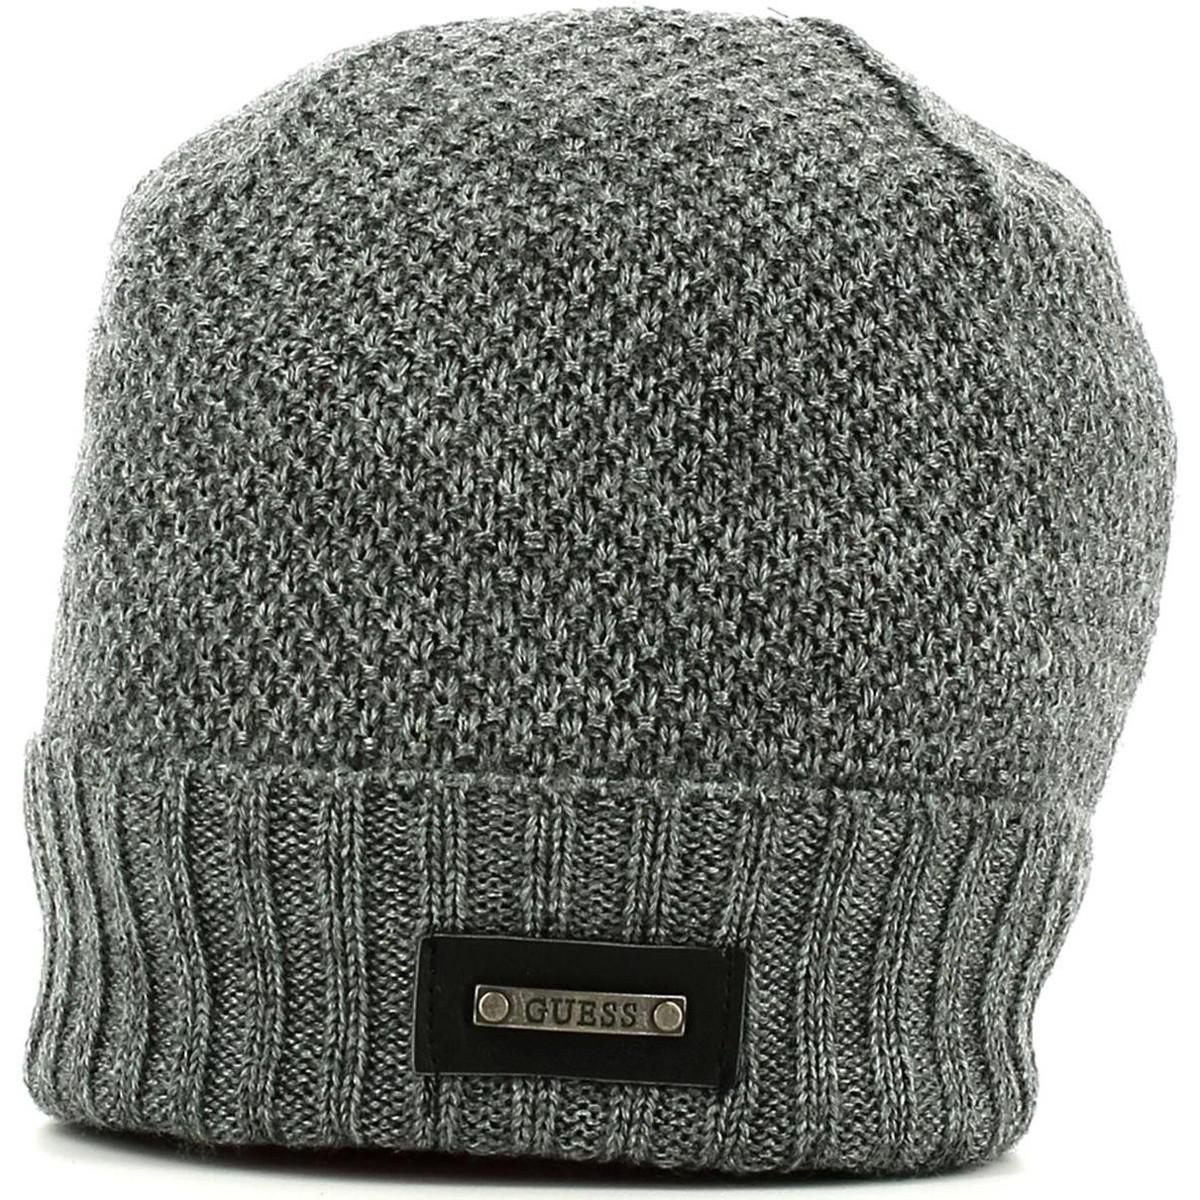 Guess Am8041 Wol01 Hat Accessories Grey Men s Beanie In Grey in Gray ... 2dc3fd8d1fd